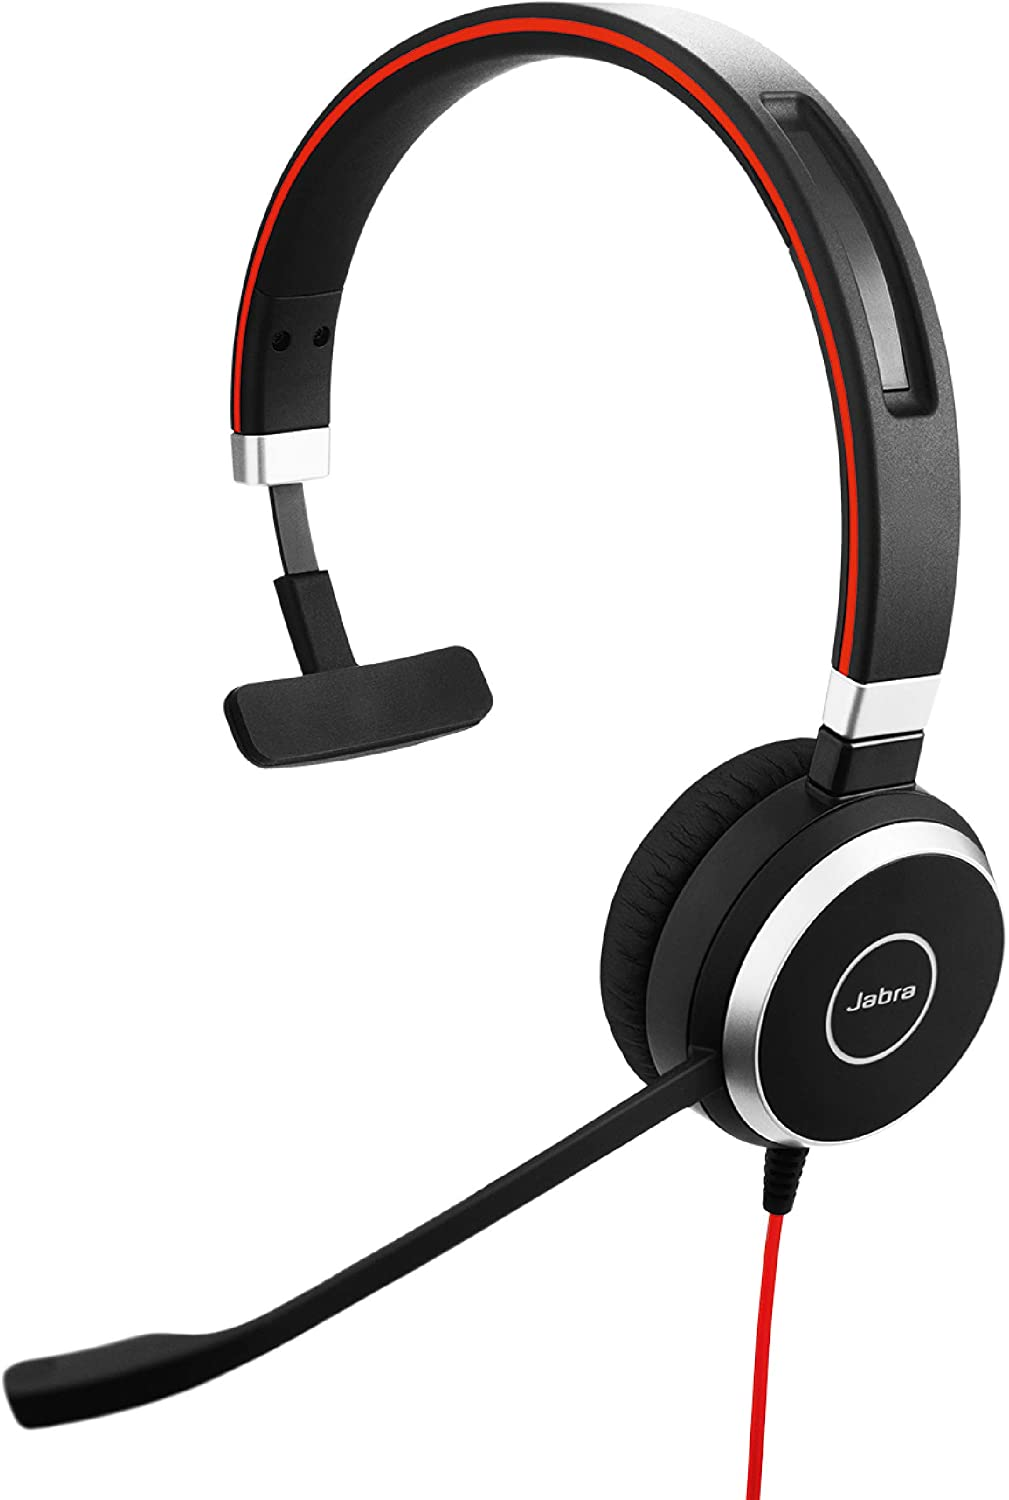 Jabra Evolve 40 UC Professional Wired Headset, Mono – Telephone Headset for Greater Productivity, Superior Sound for Calls and Music, 3.5mm Jack/USB Connection, All-Day Comfort Design, UC Optimized